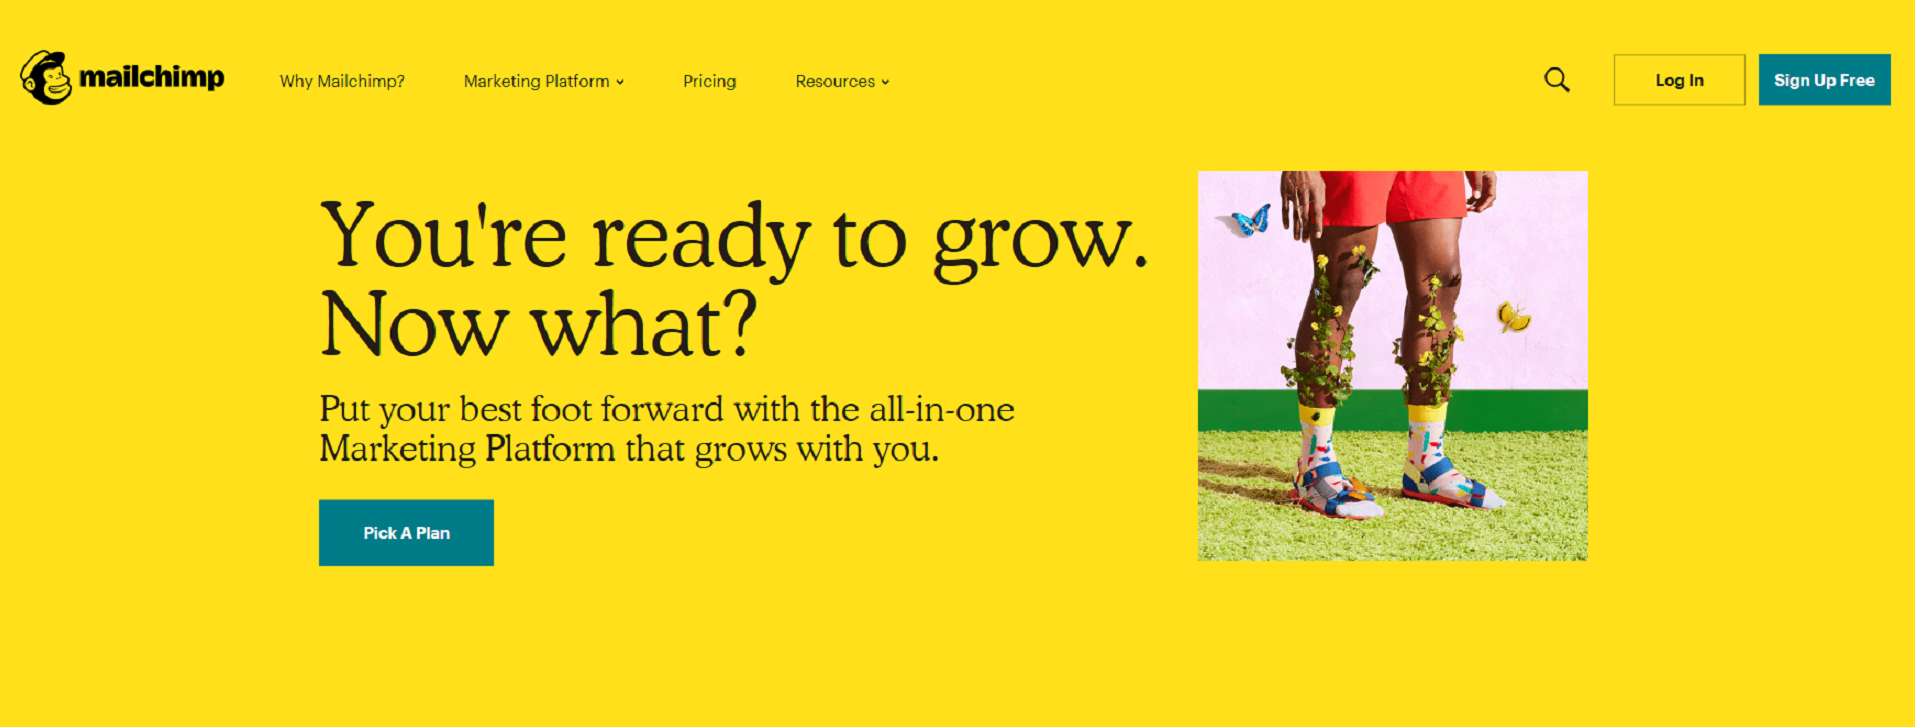 Mailchimp to organize your professional life.